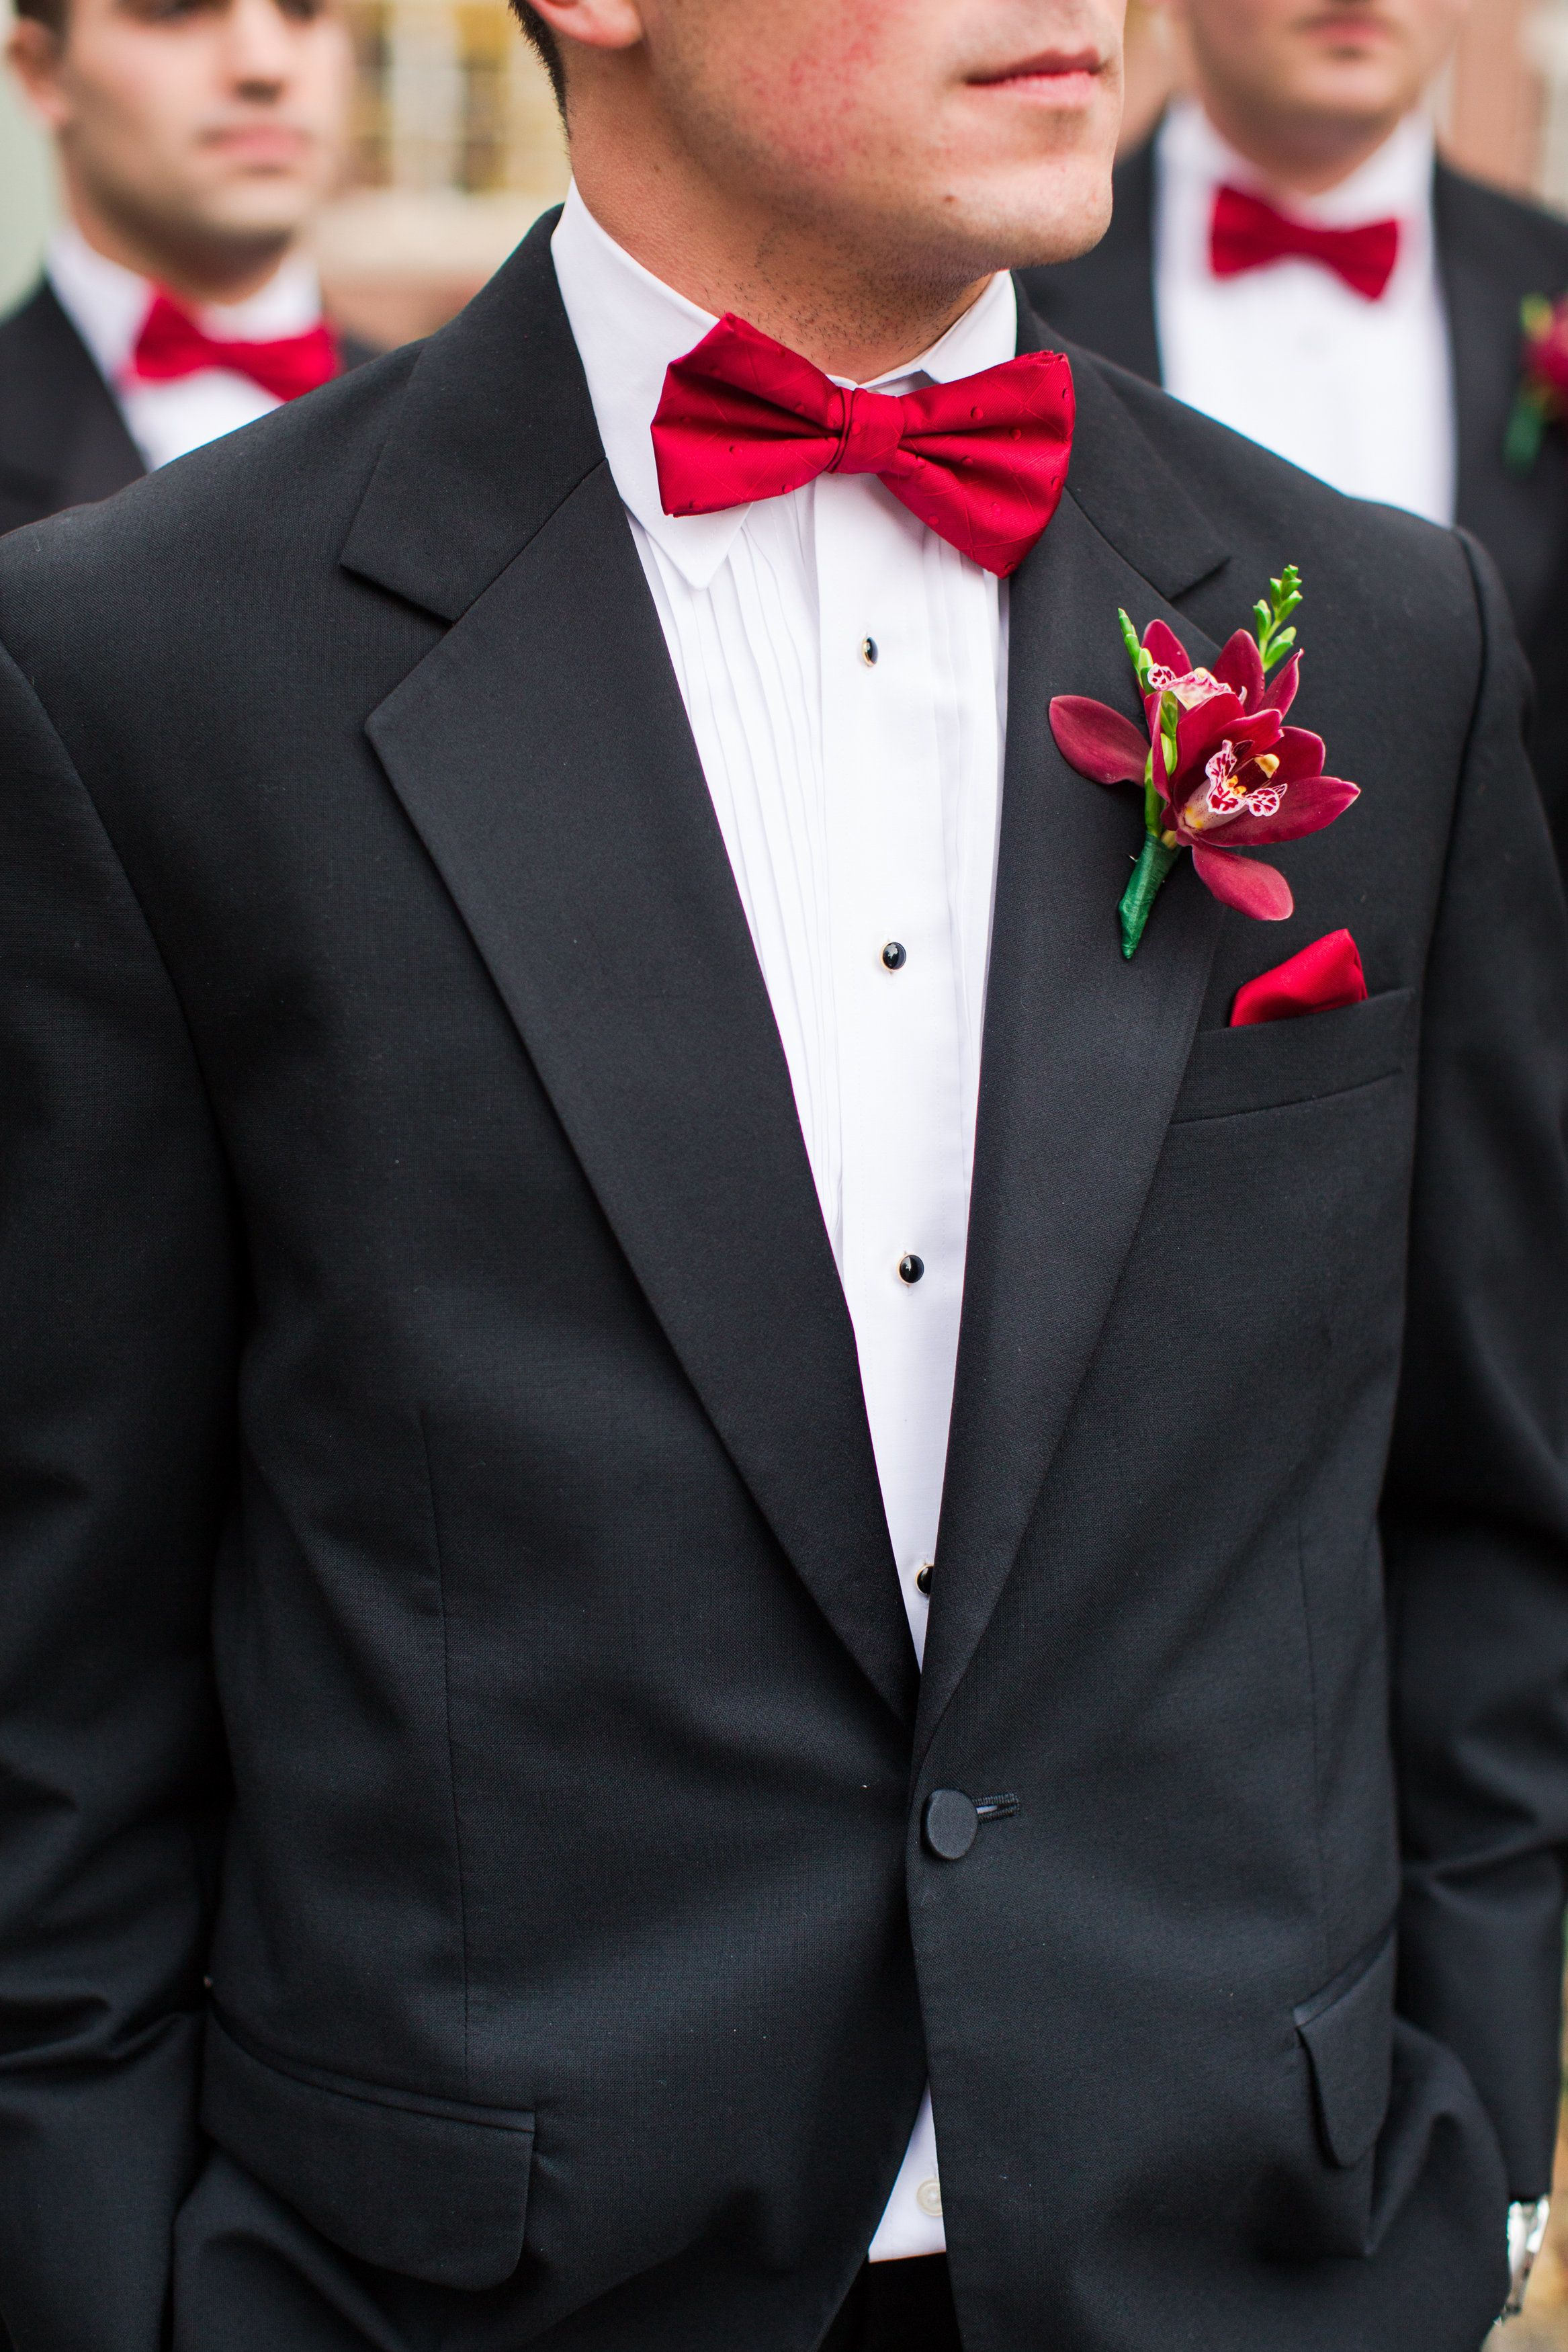 tuxedo with red bow tie photo - 1